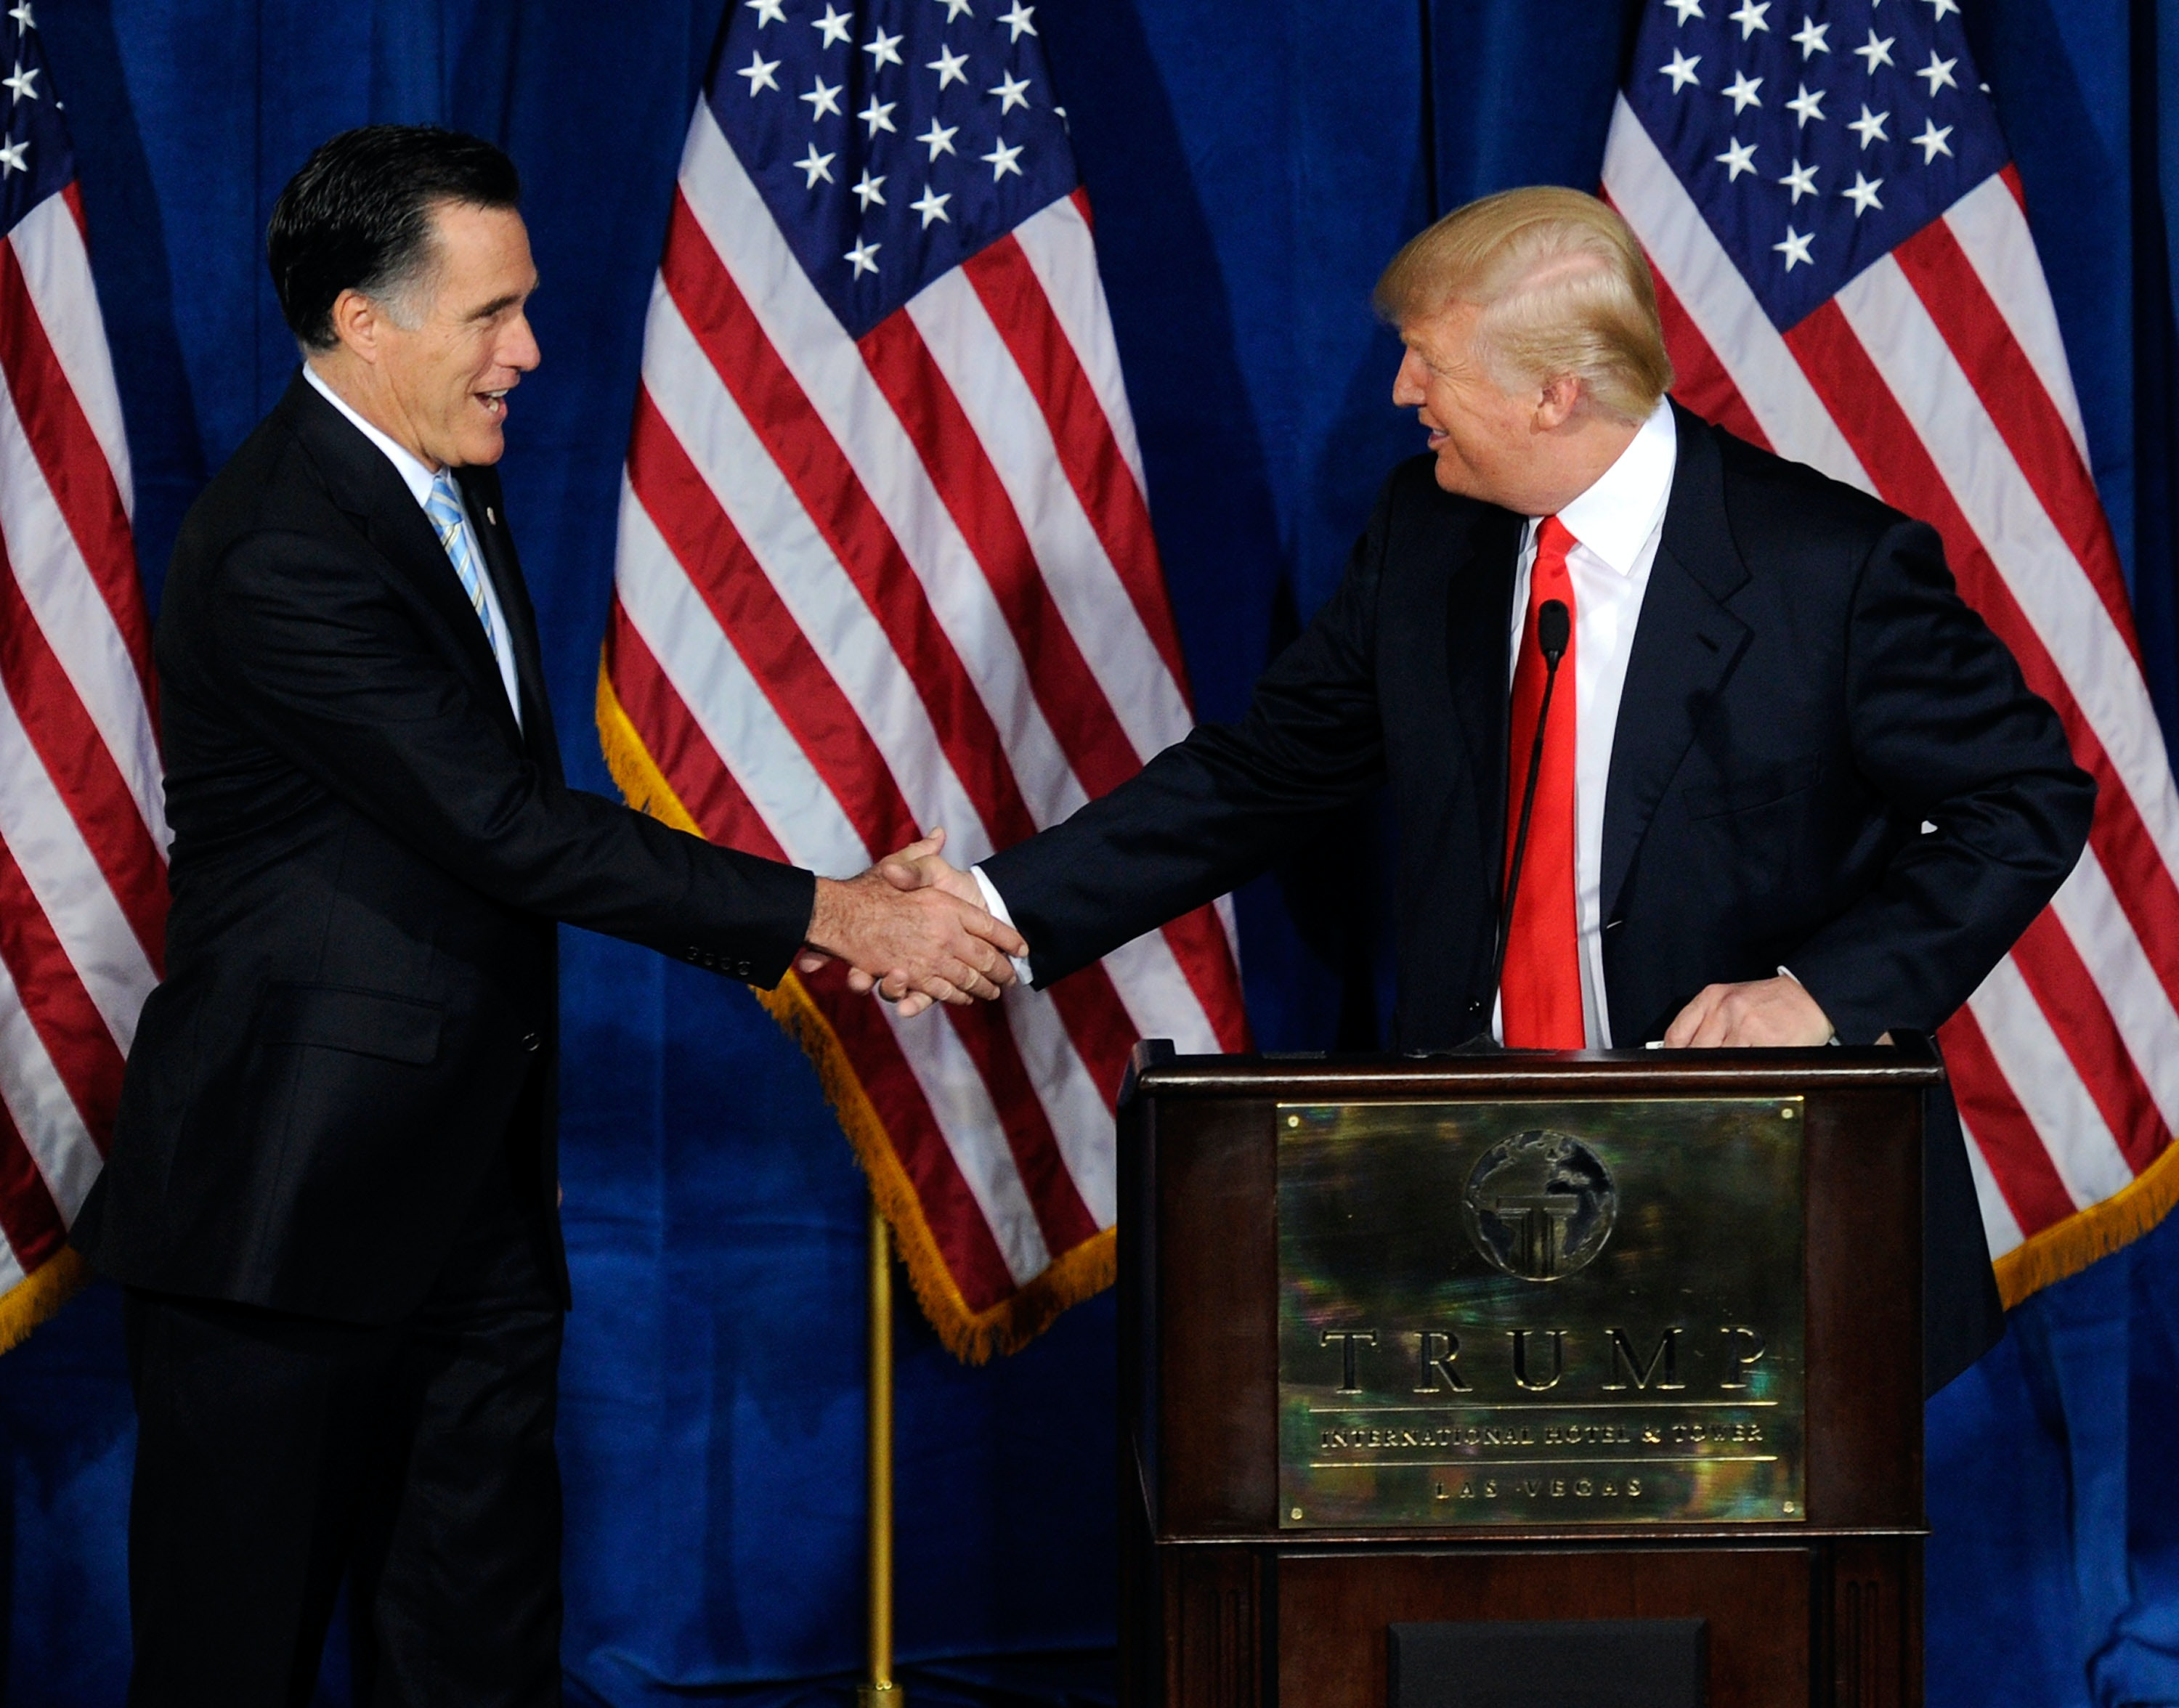 Donald Trump, Mitt Romney hold 'far-reaching' talk on world affairs